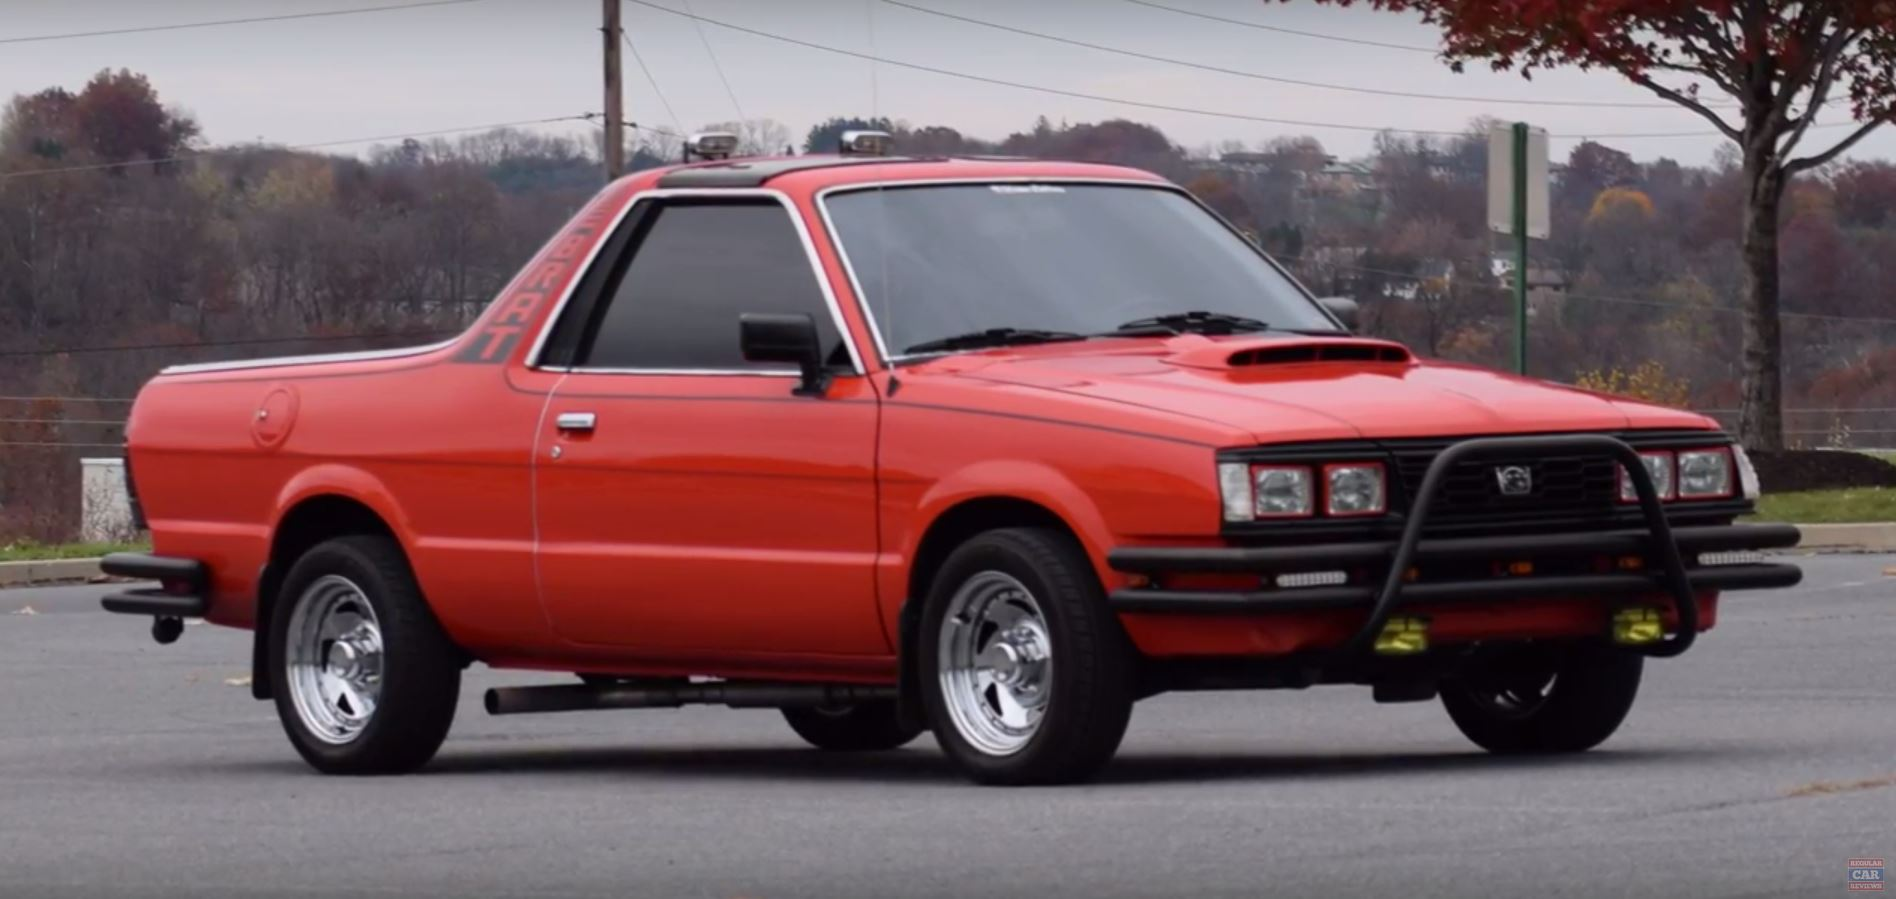 subaru brat is more hipster than a volvo 240 says regular